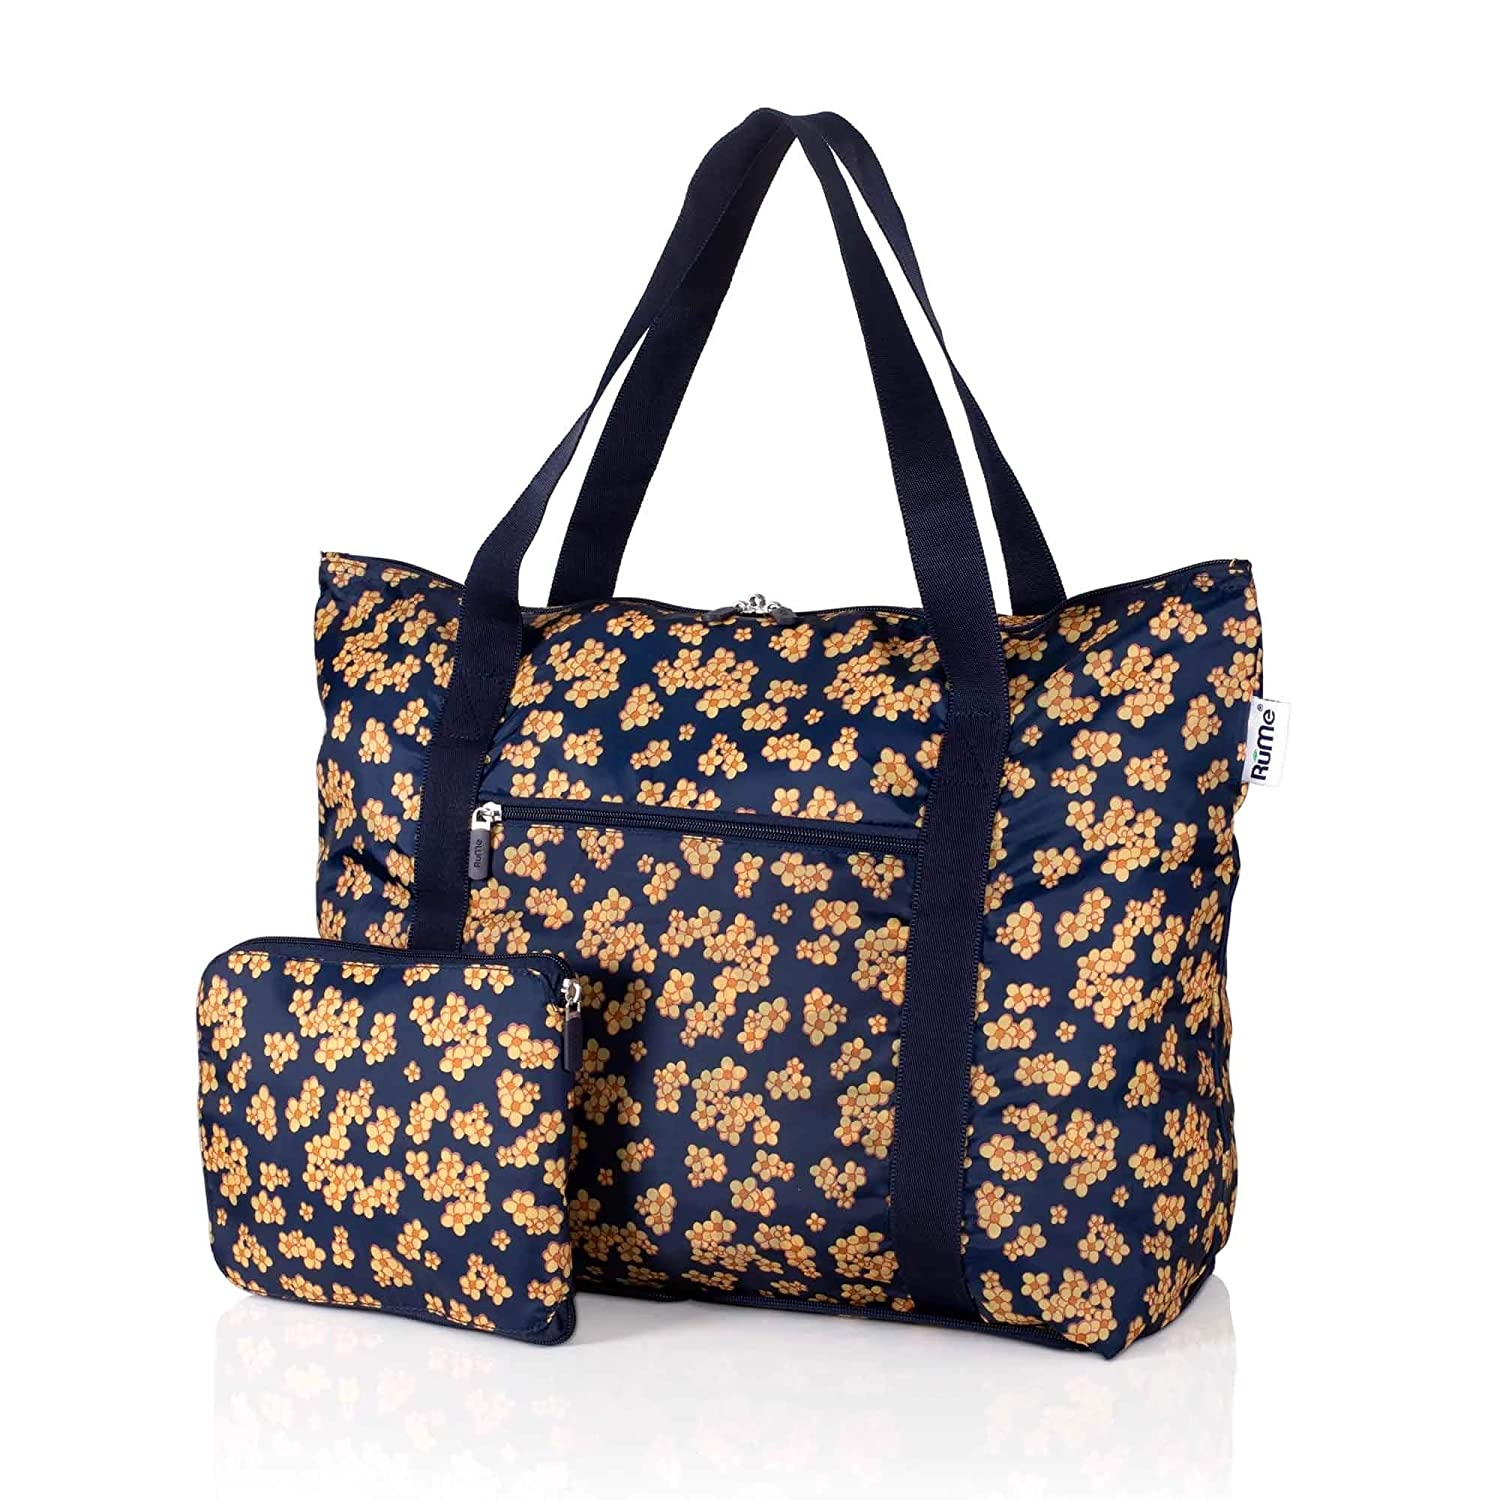 RuMe Bags cFold Expandable Carry All Choose Your Color Marigold